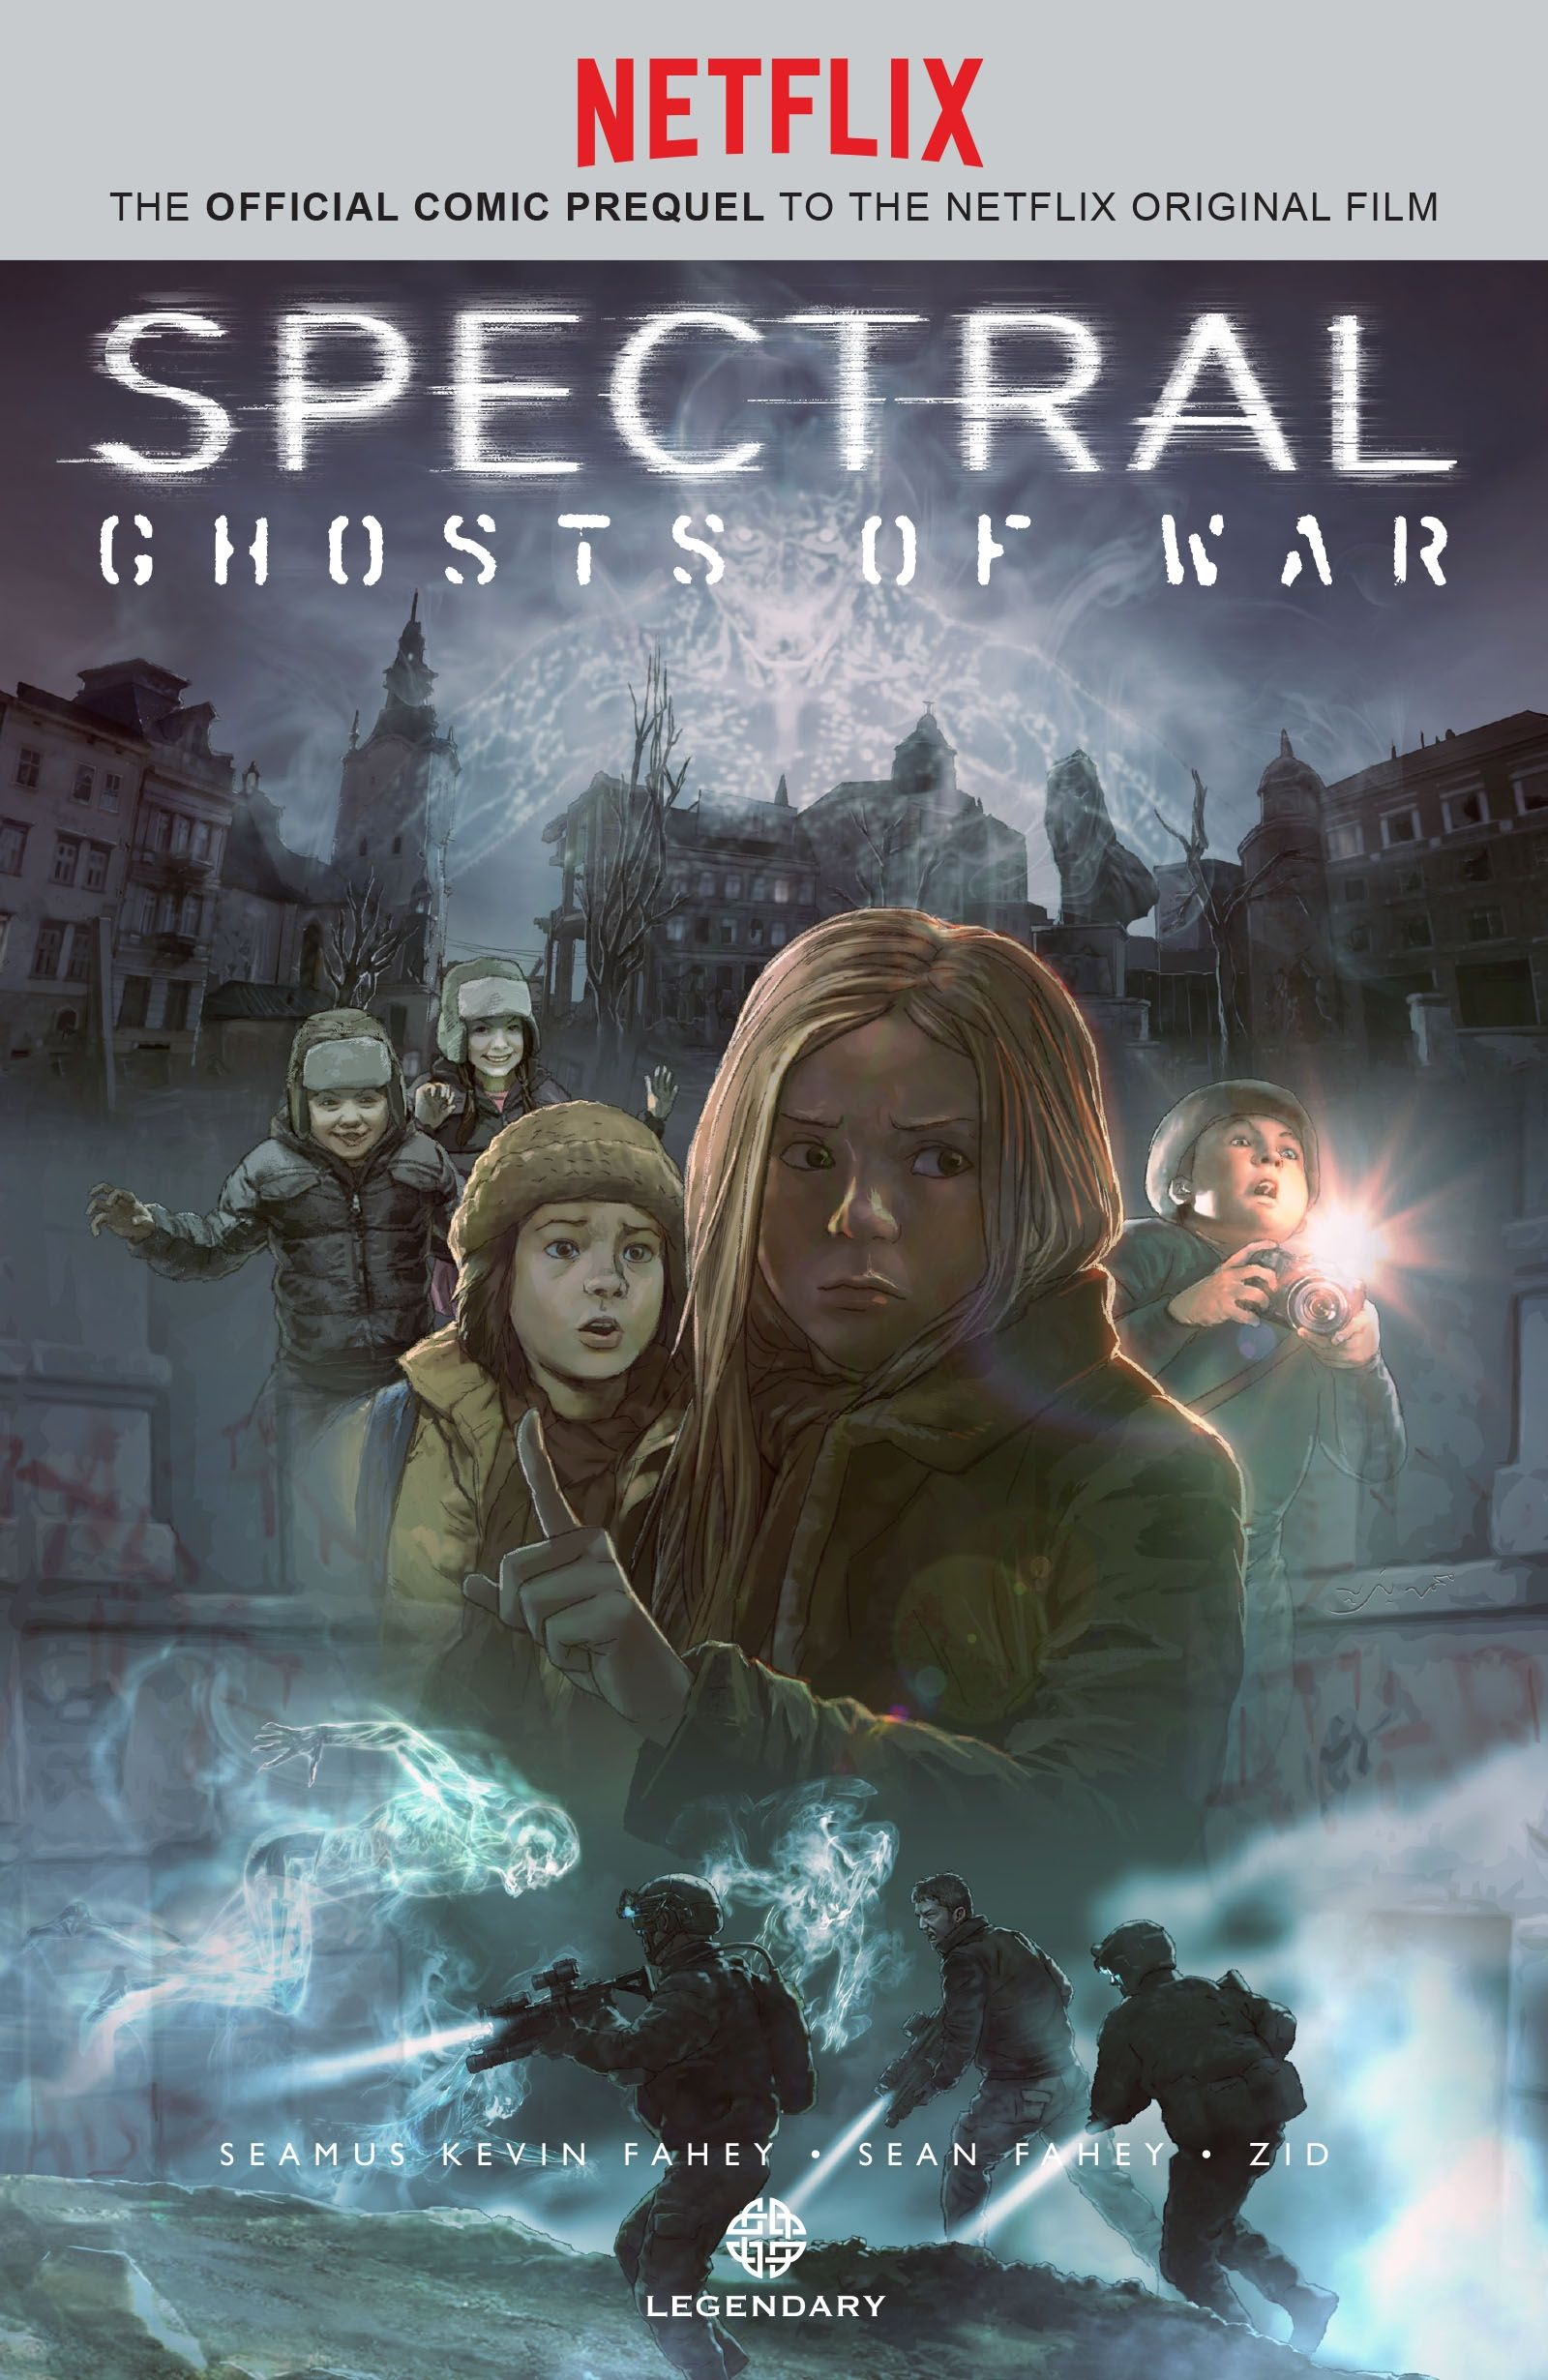 Netflix's Spectral Gets Comic Book Prequel Today